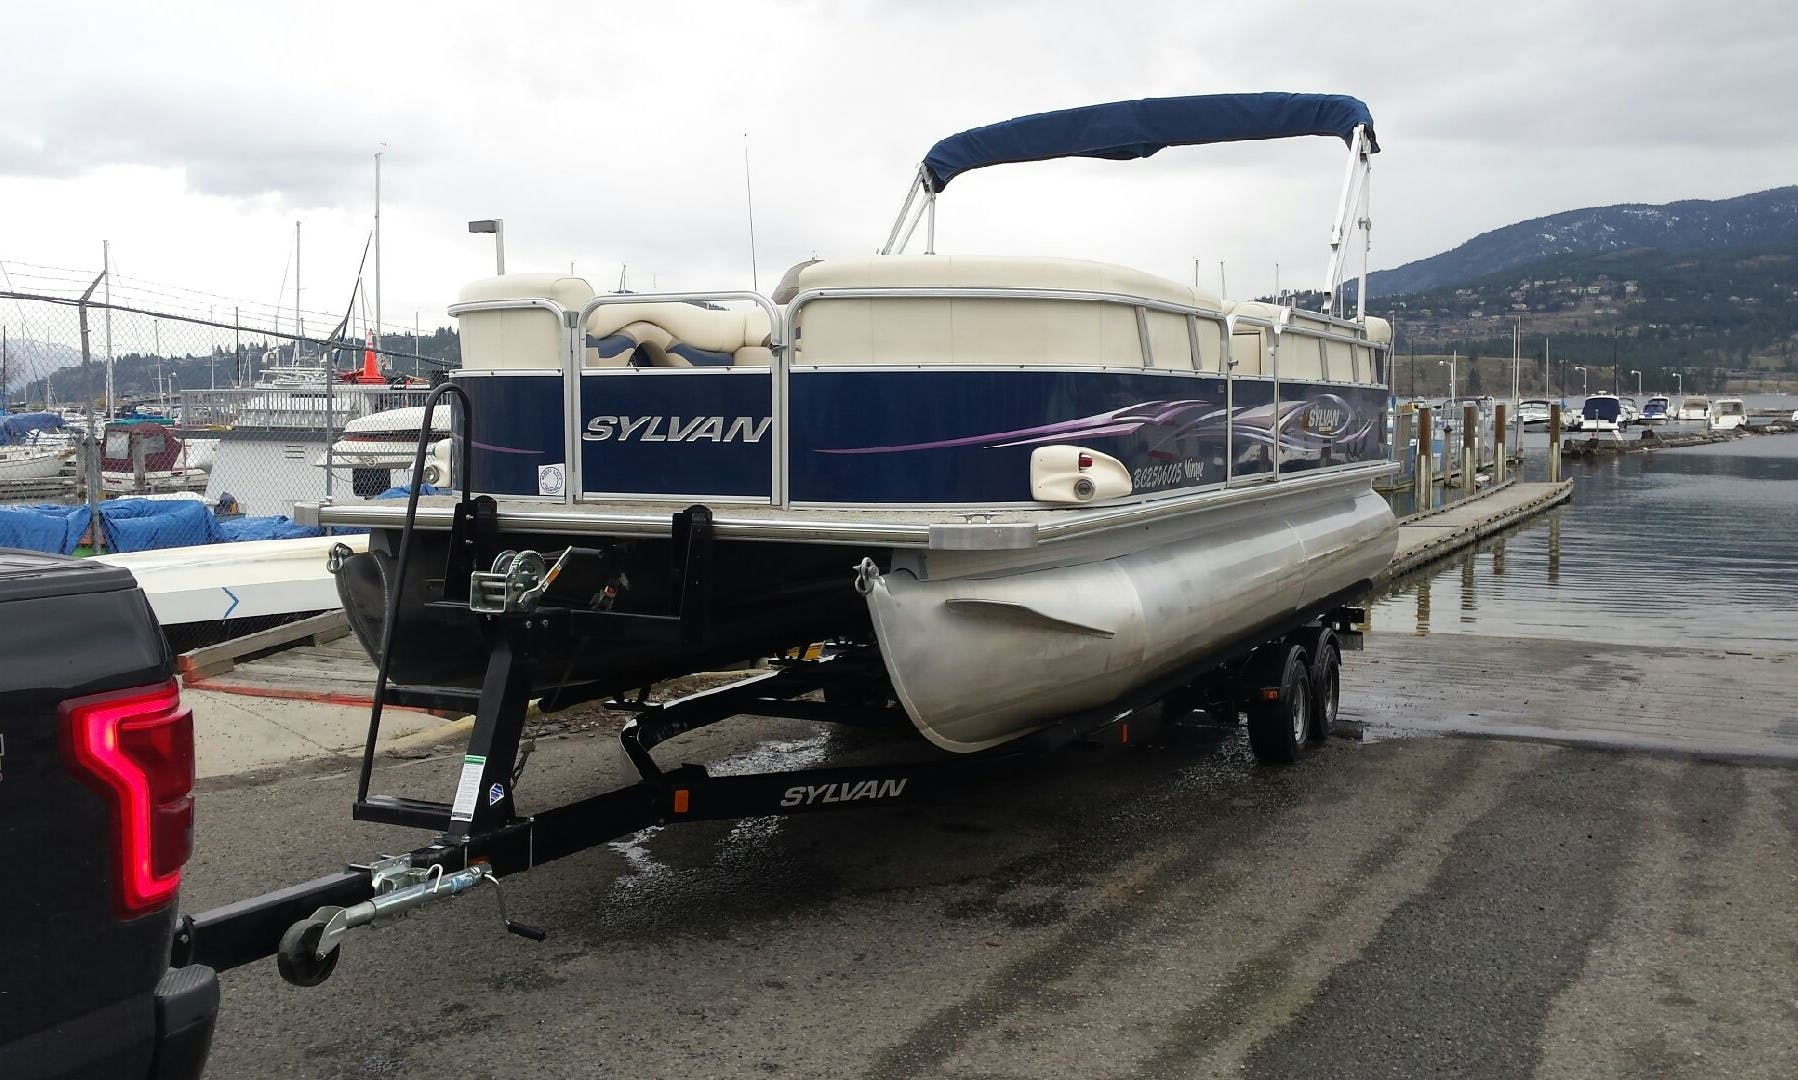 23 ft Sylvan Mirage Pontoon 8522 Available for Rent in Kelowna, Canada